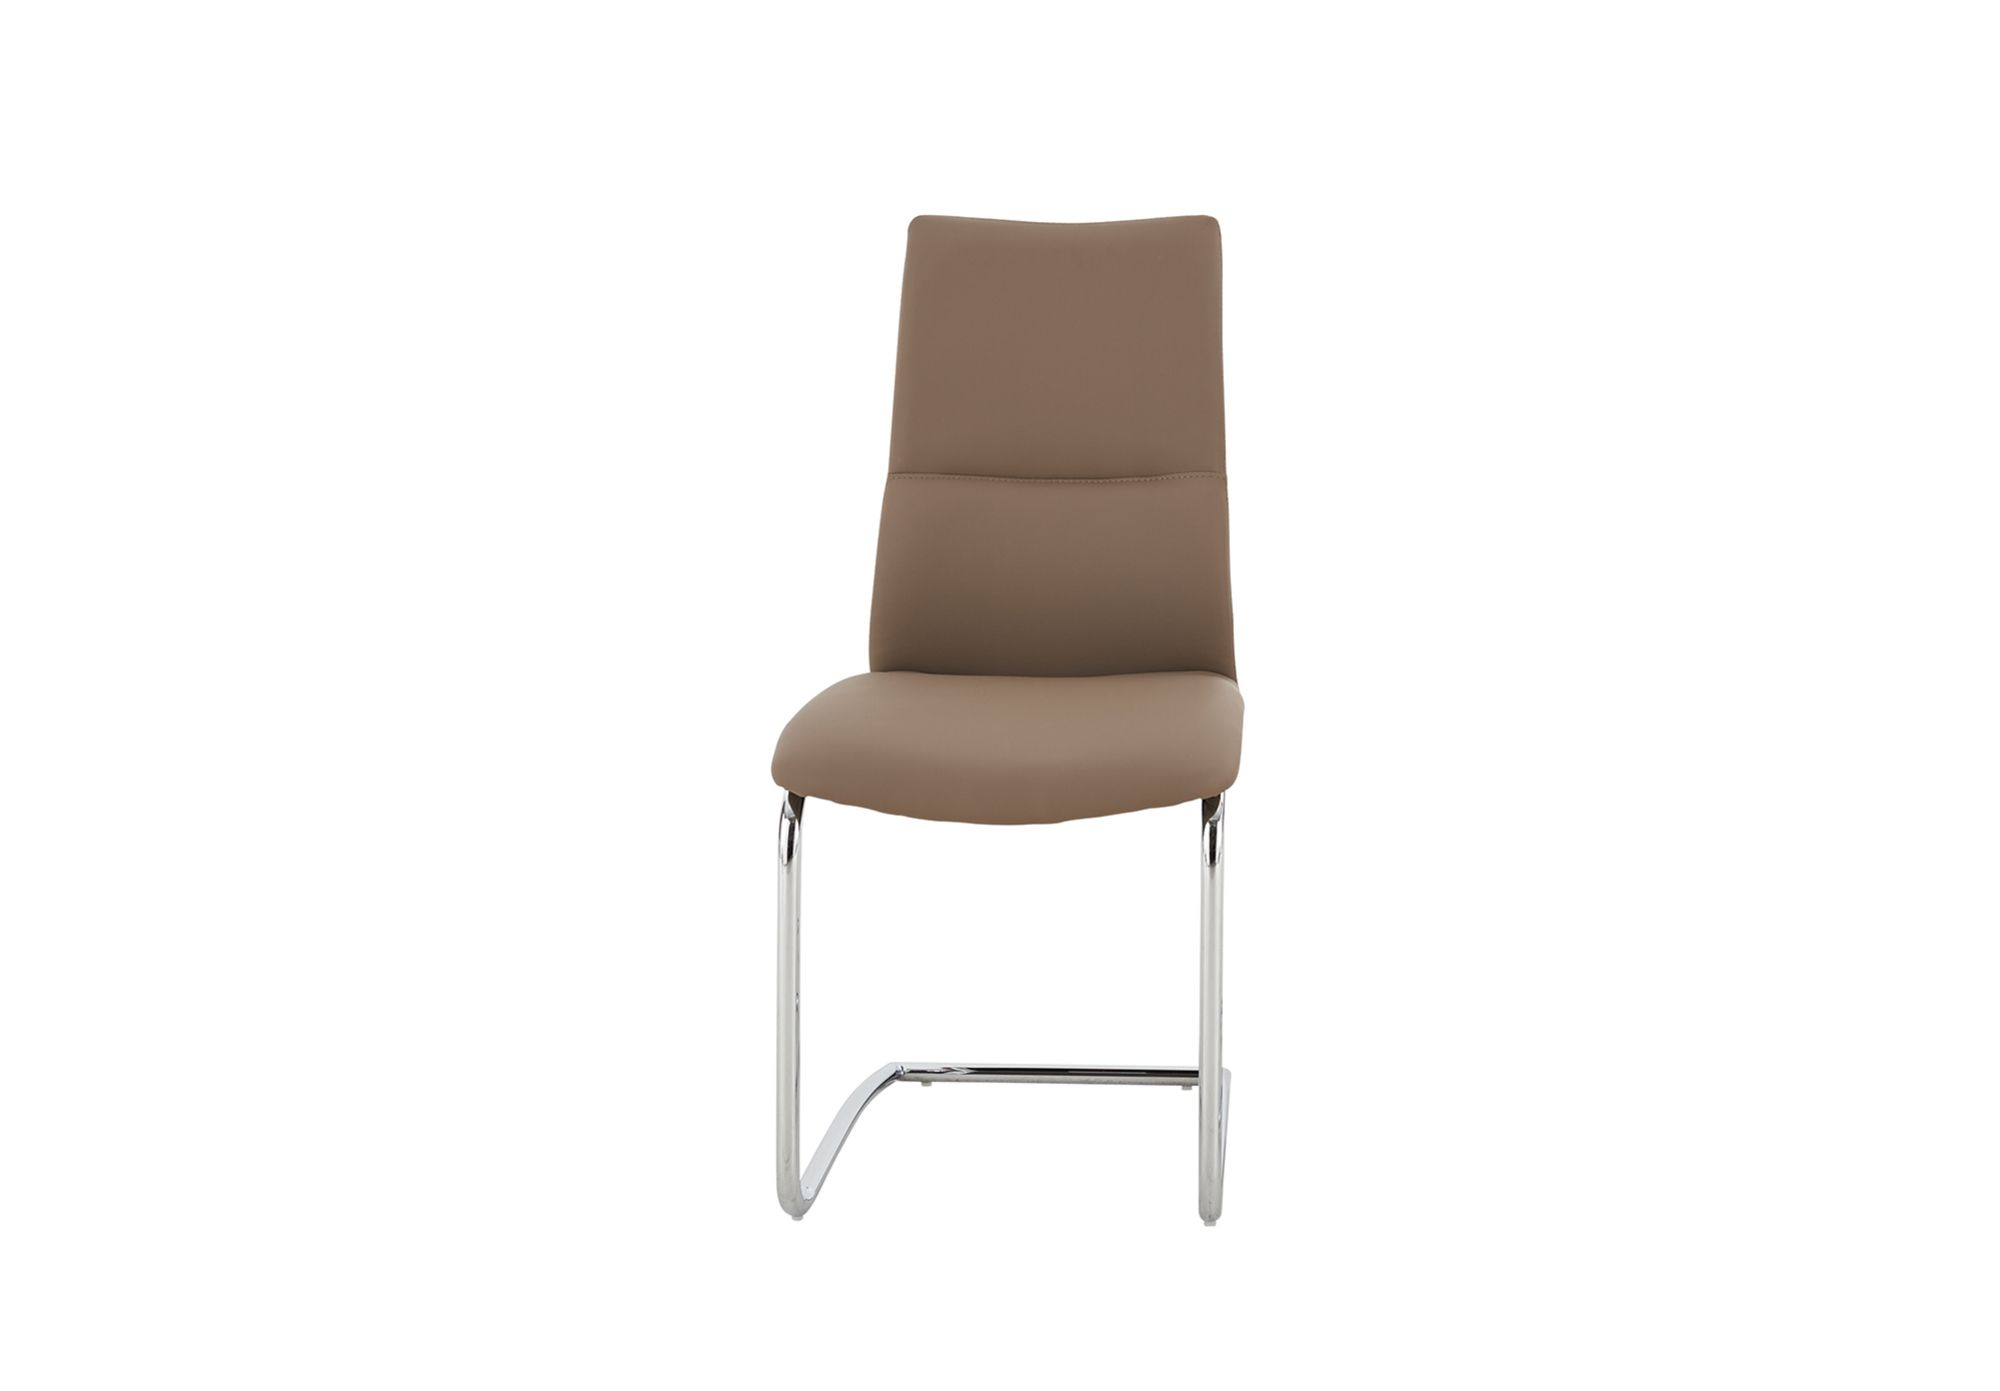 Alaska Dining Chair at Furniture Village - Alaska Dining Room Furniture at Furniture Village - Dining Furniture from Furniture Village